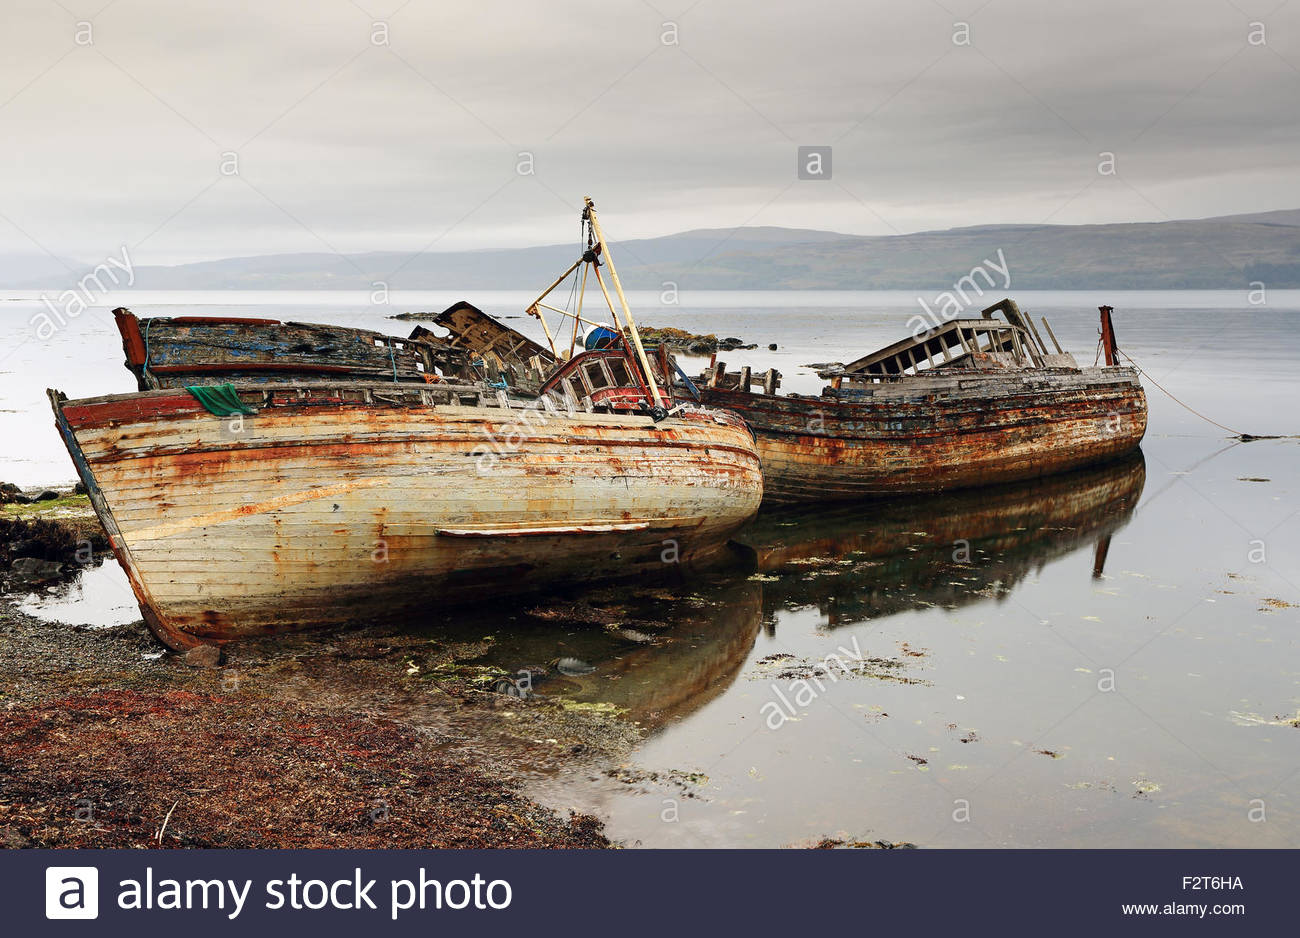 Two fishing boat ruins on the shore of Salen bay on the Isle of Mull. - Stock Image